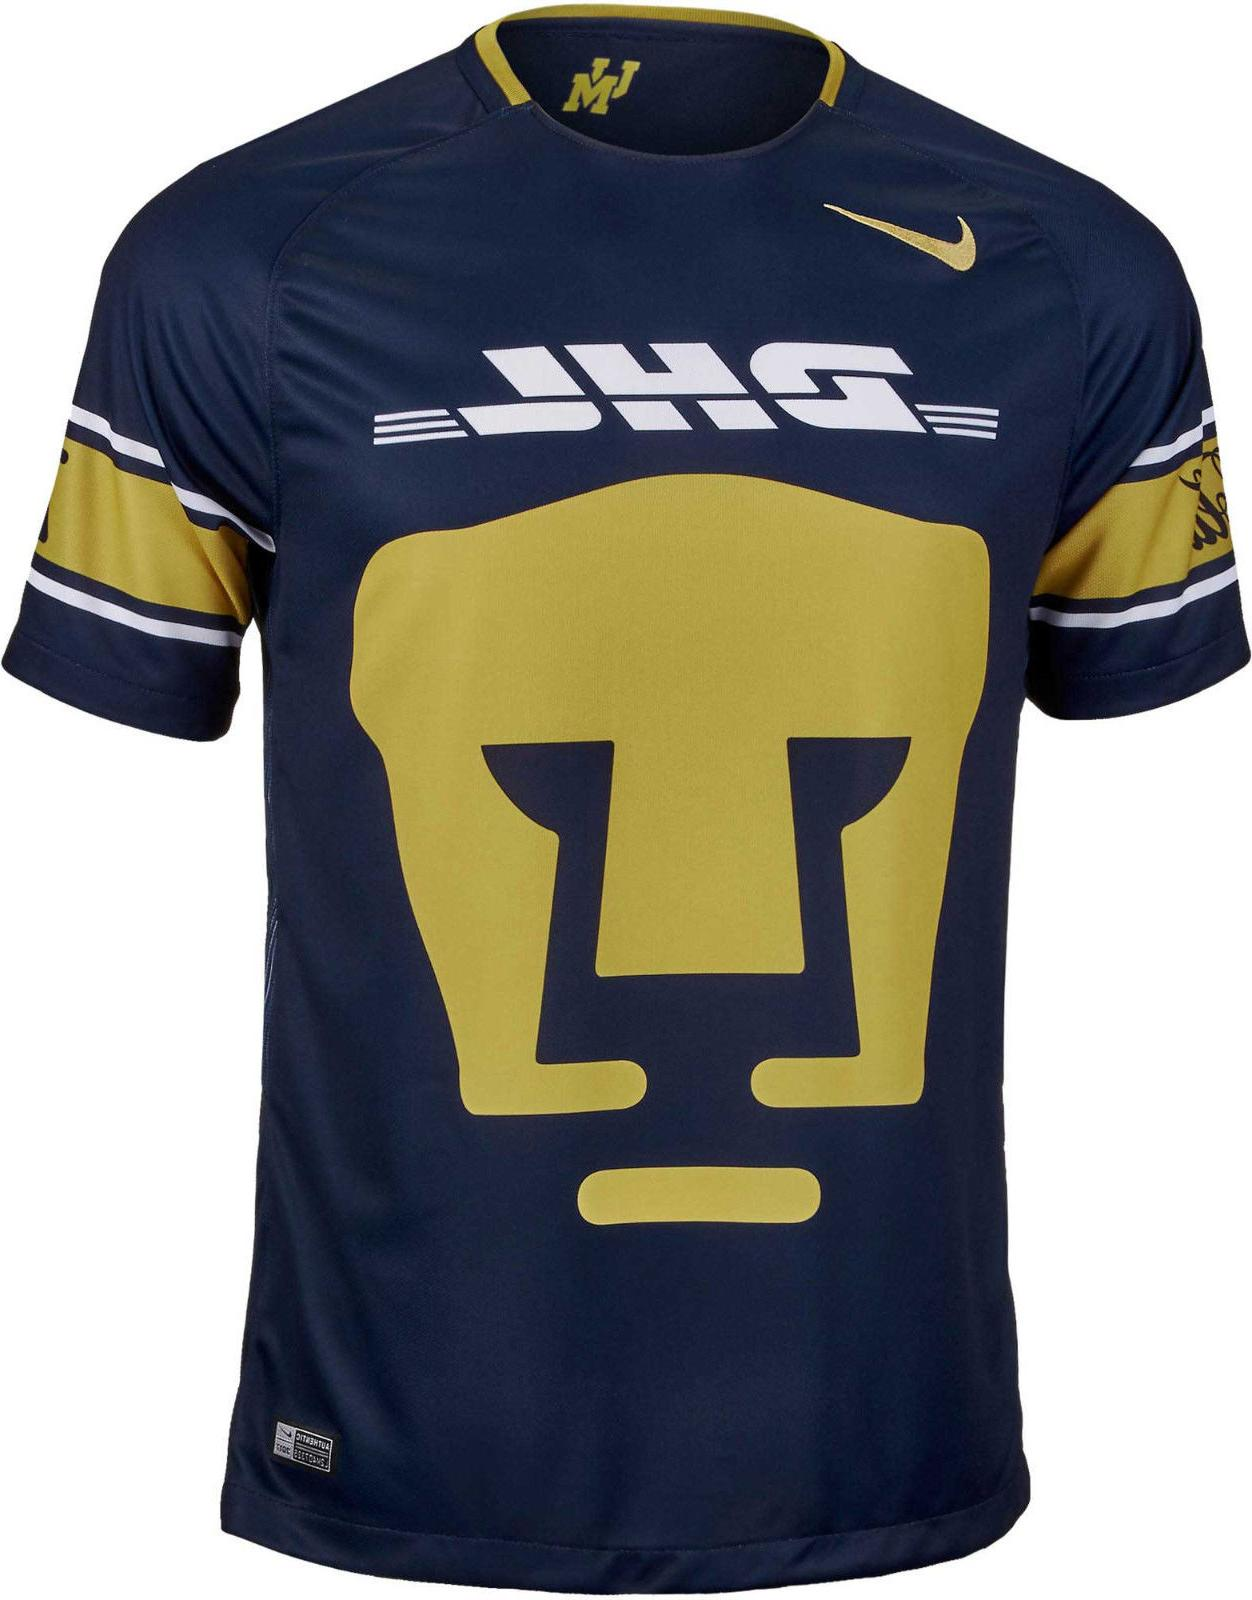 cheap for discount 4a2c3 6766c Navy Soccer Jersey | Soccer-jersey.org